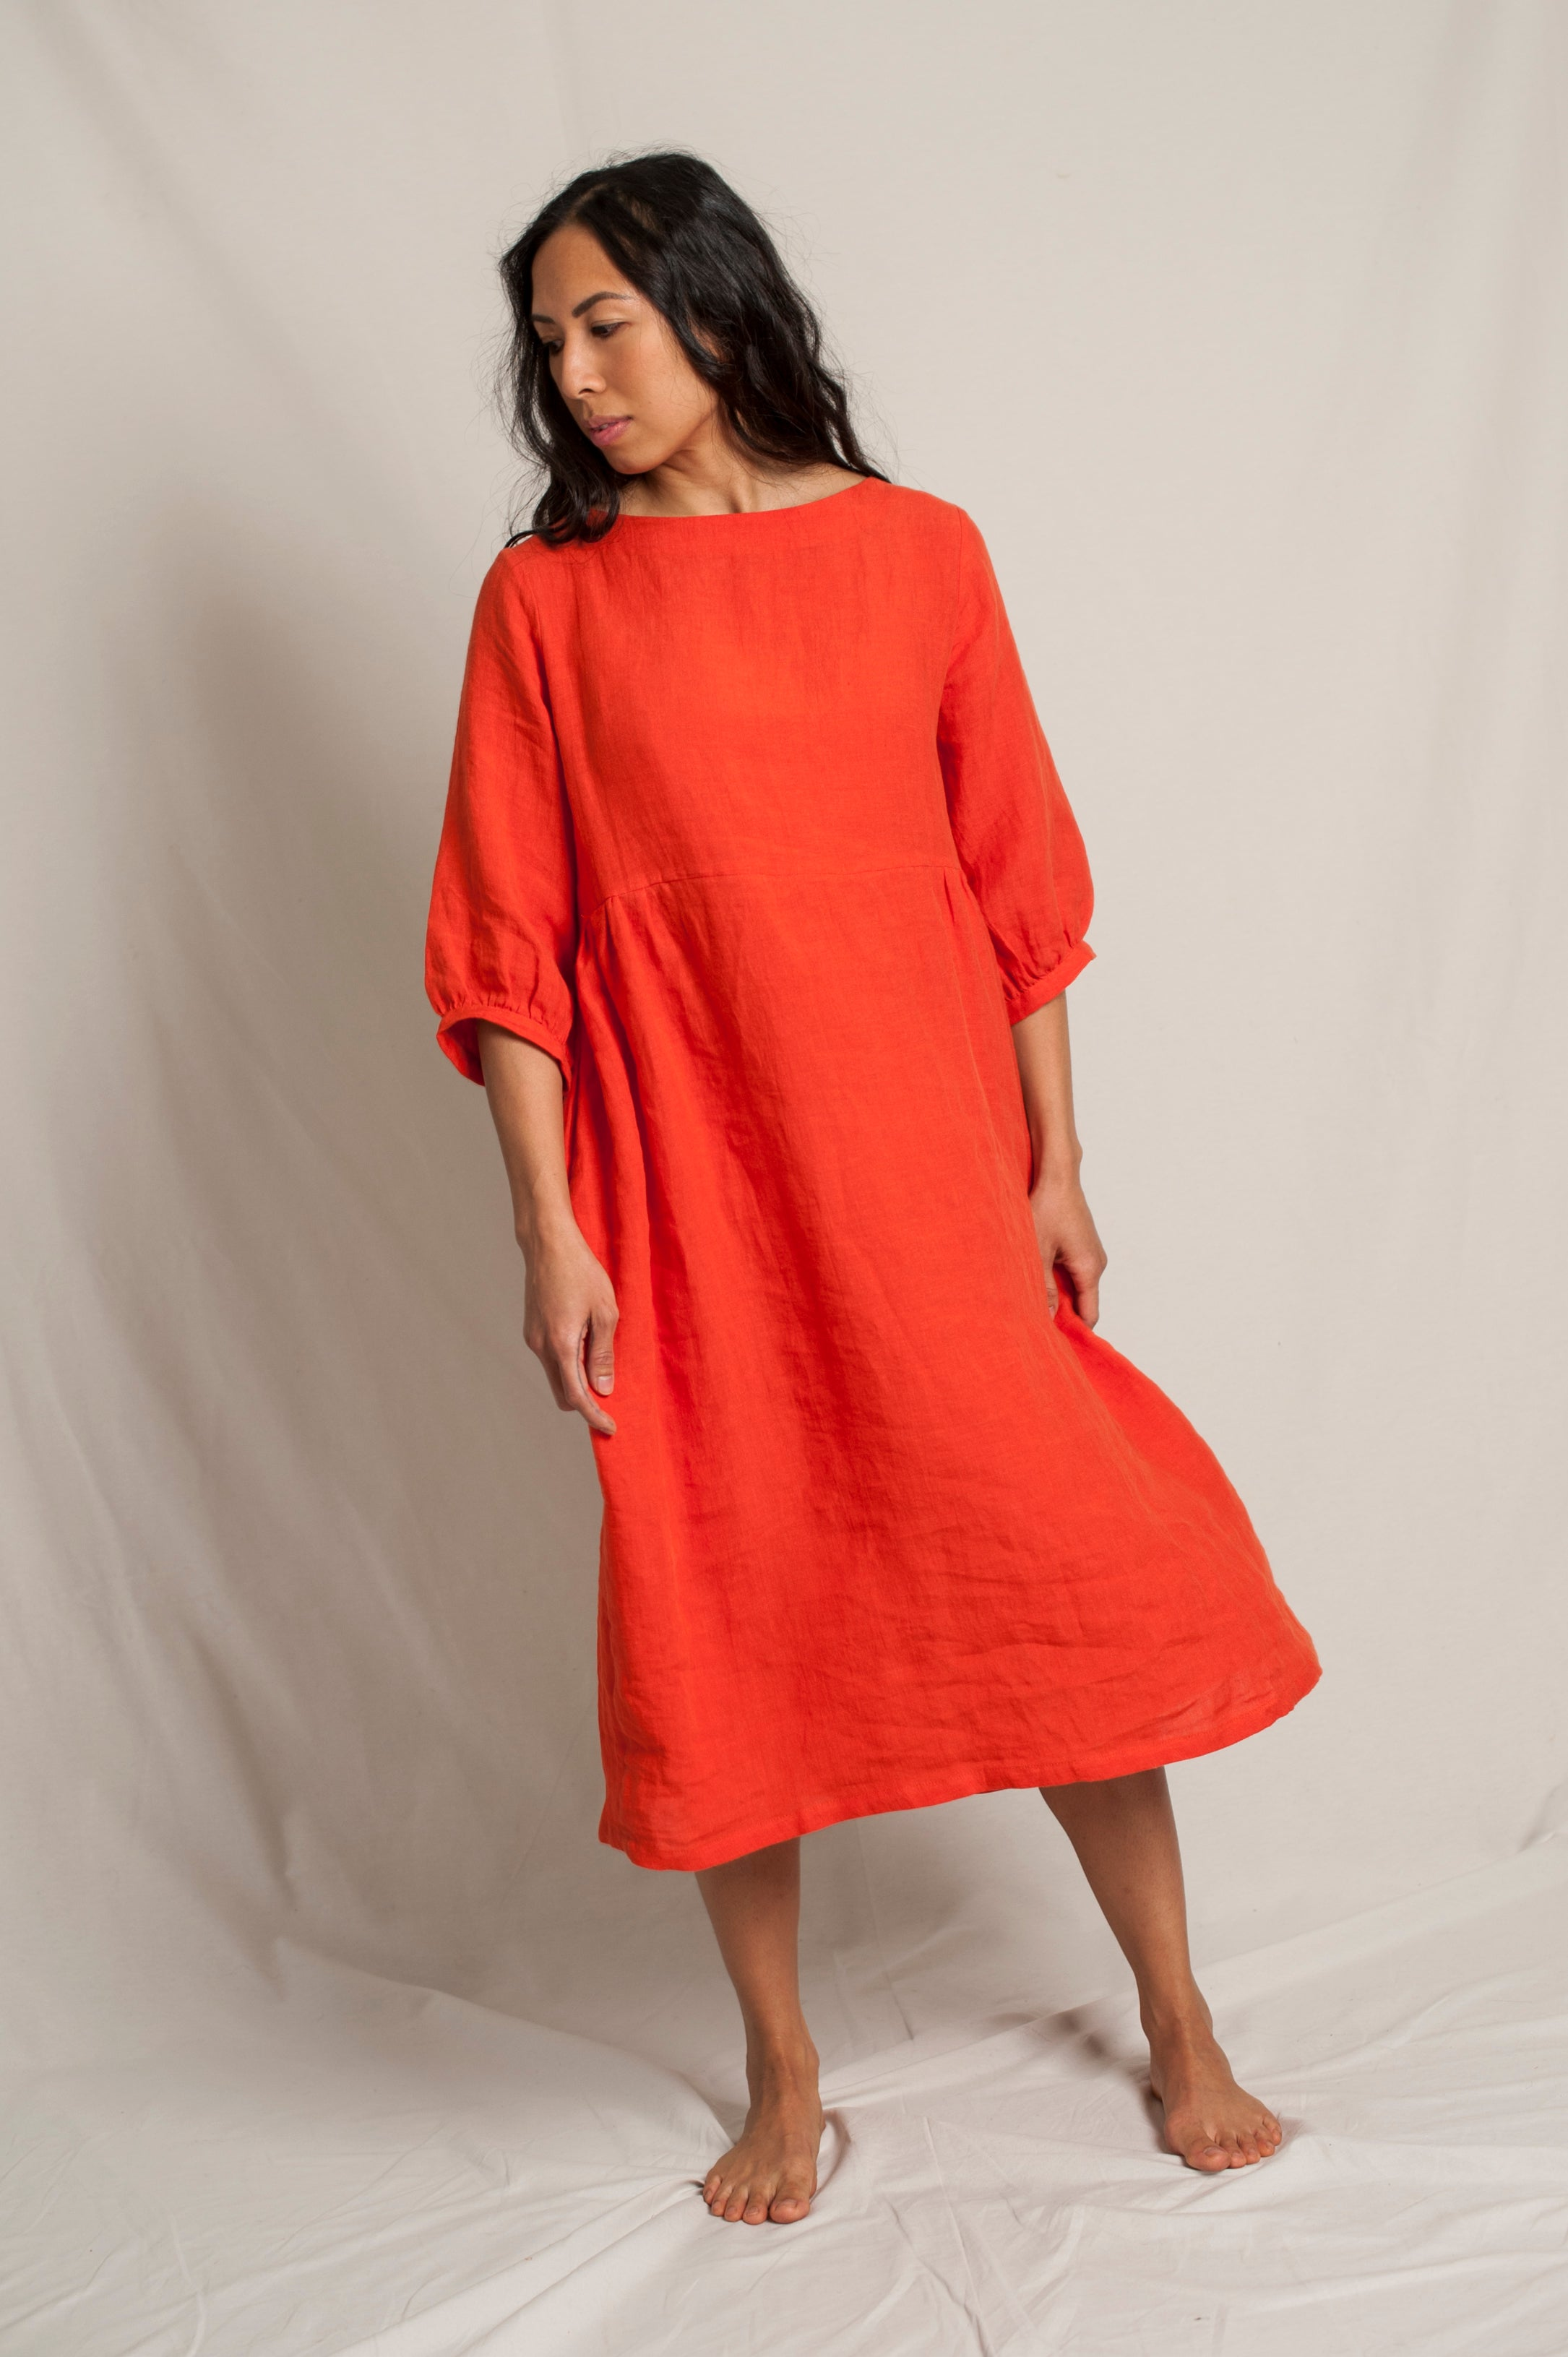 L'Envers - Flora Linen Dress - 100% French linen - Color Coral - Preview Picture